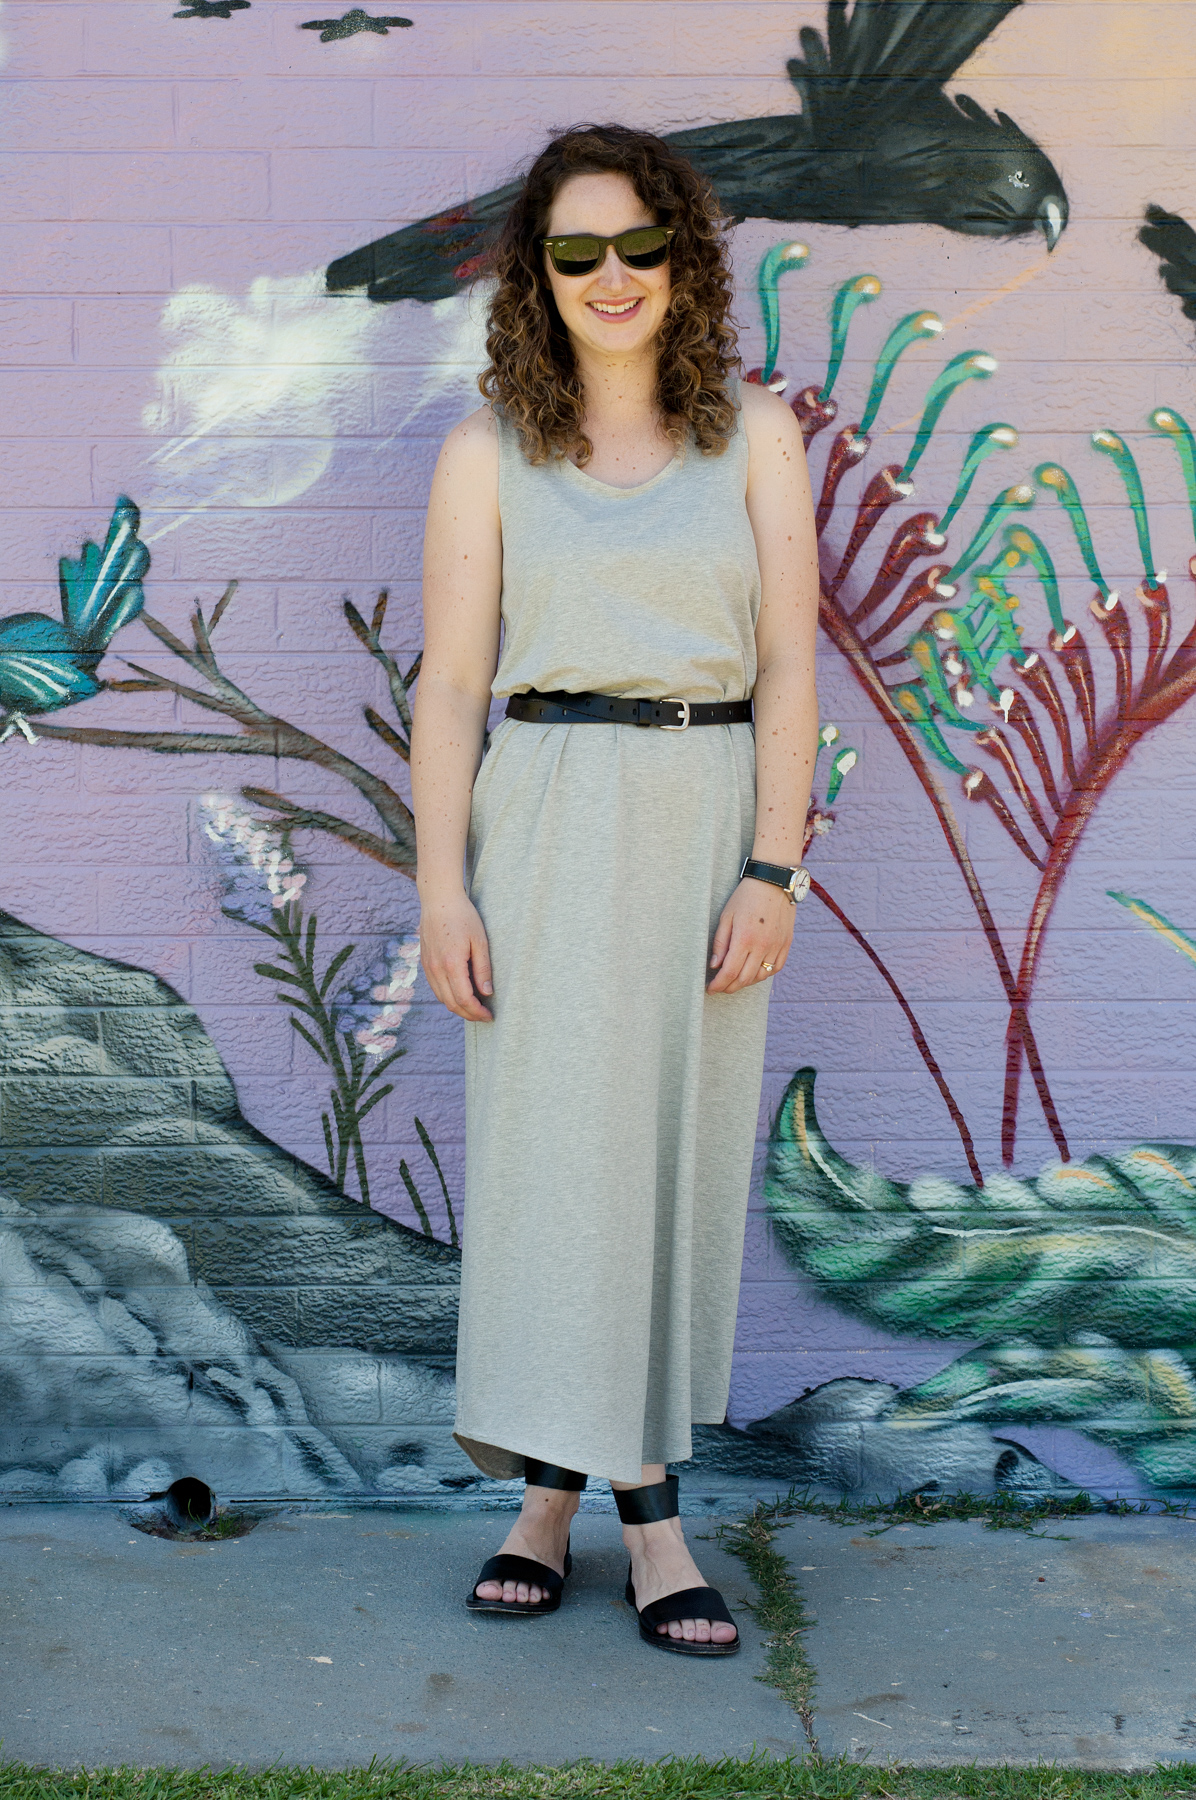 10 most worn makes in 10 years of blogging // Megan Nielsen jersey Eucalypt maxi dress